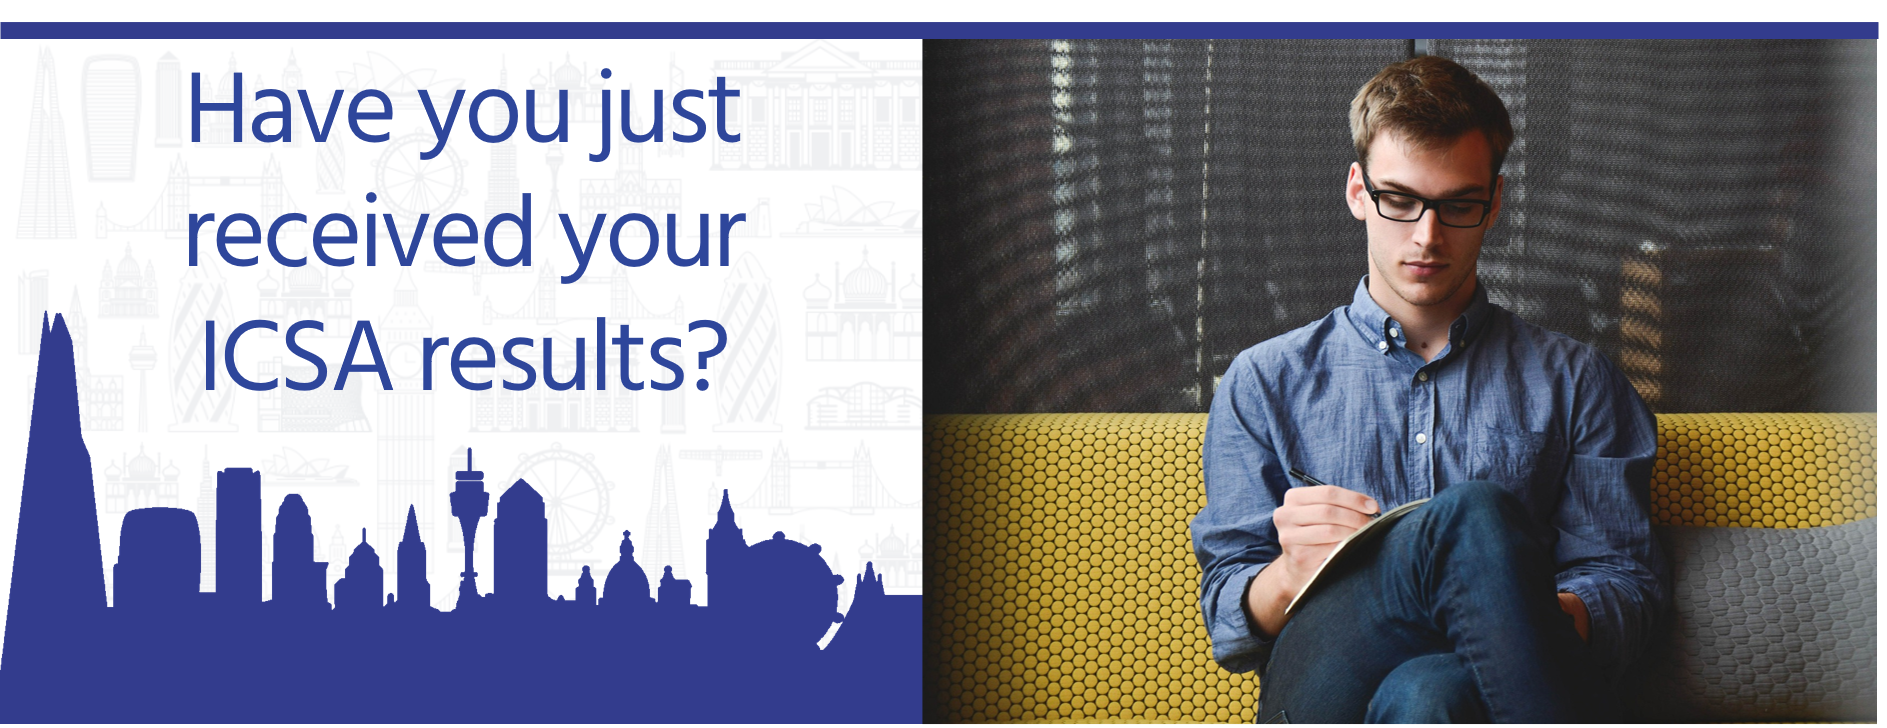 Have you just received your ICSA results?